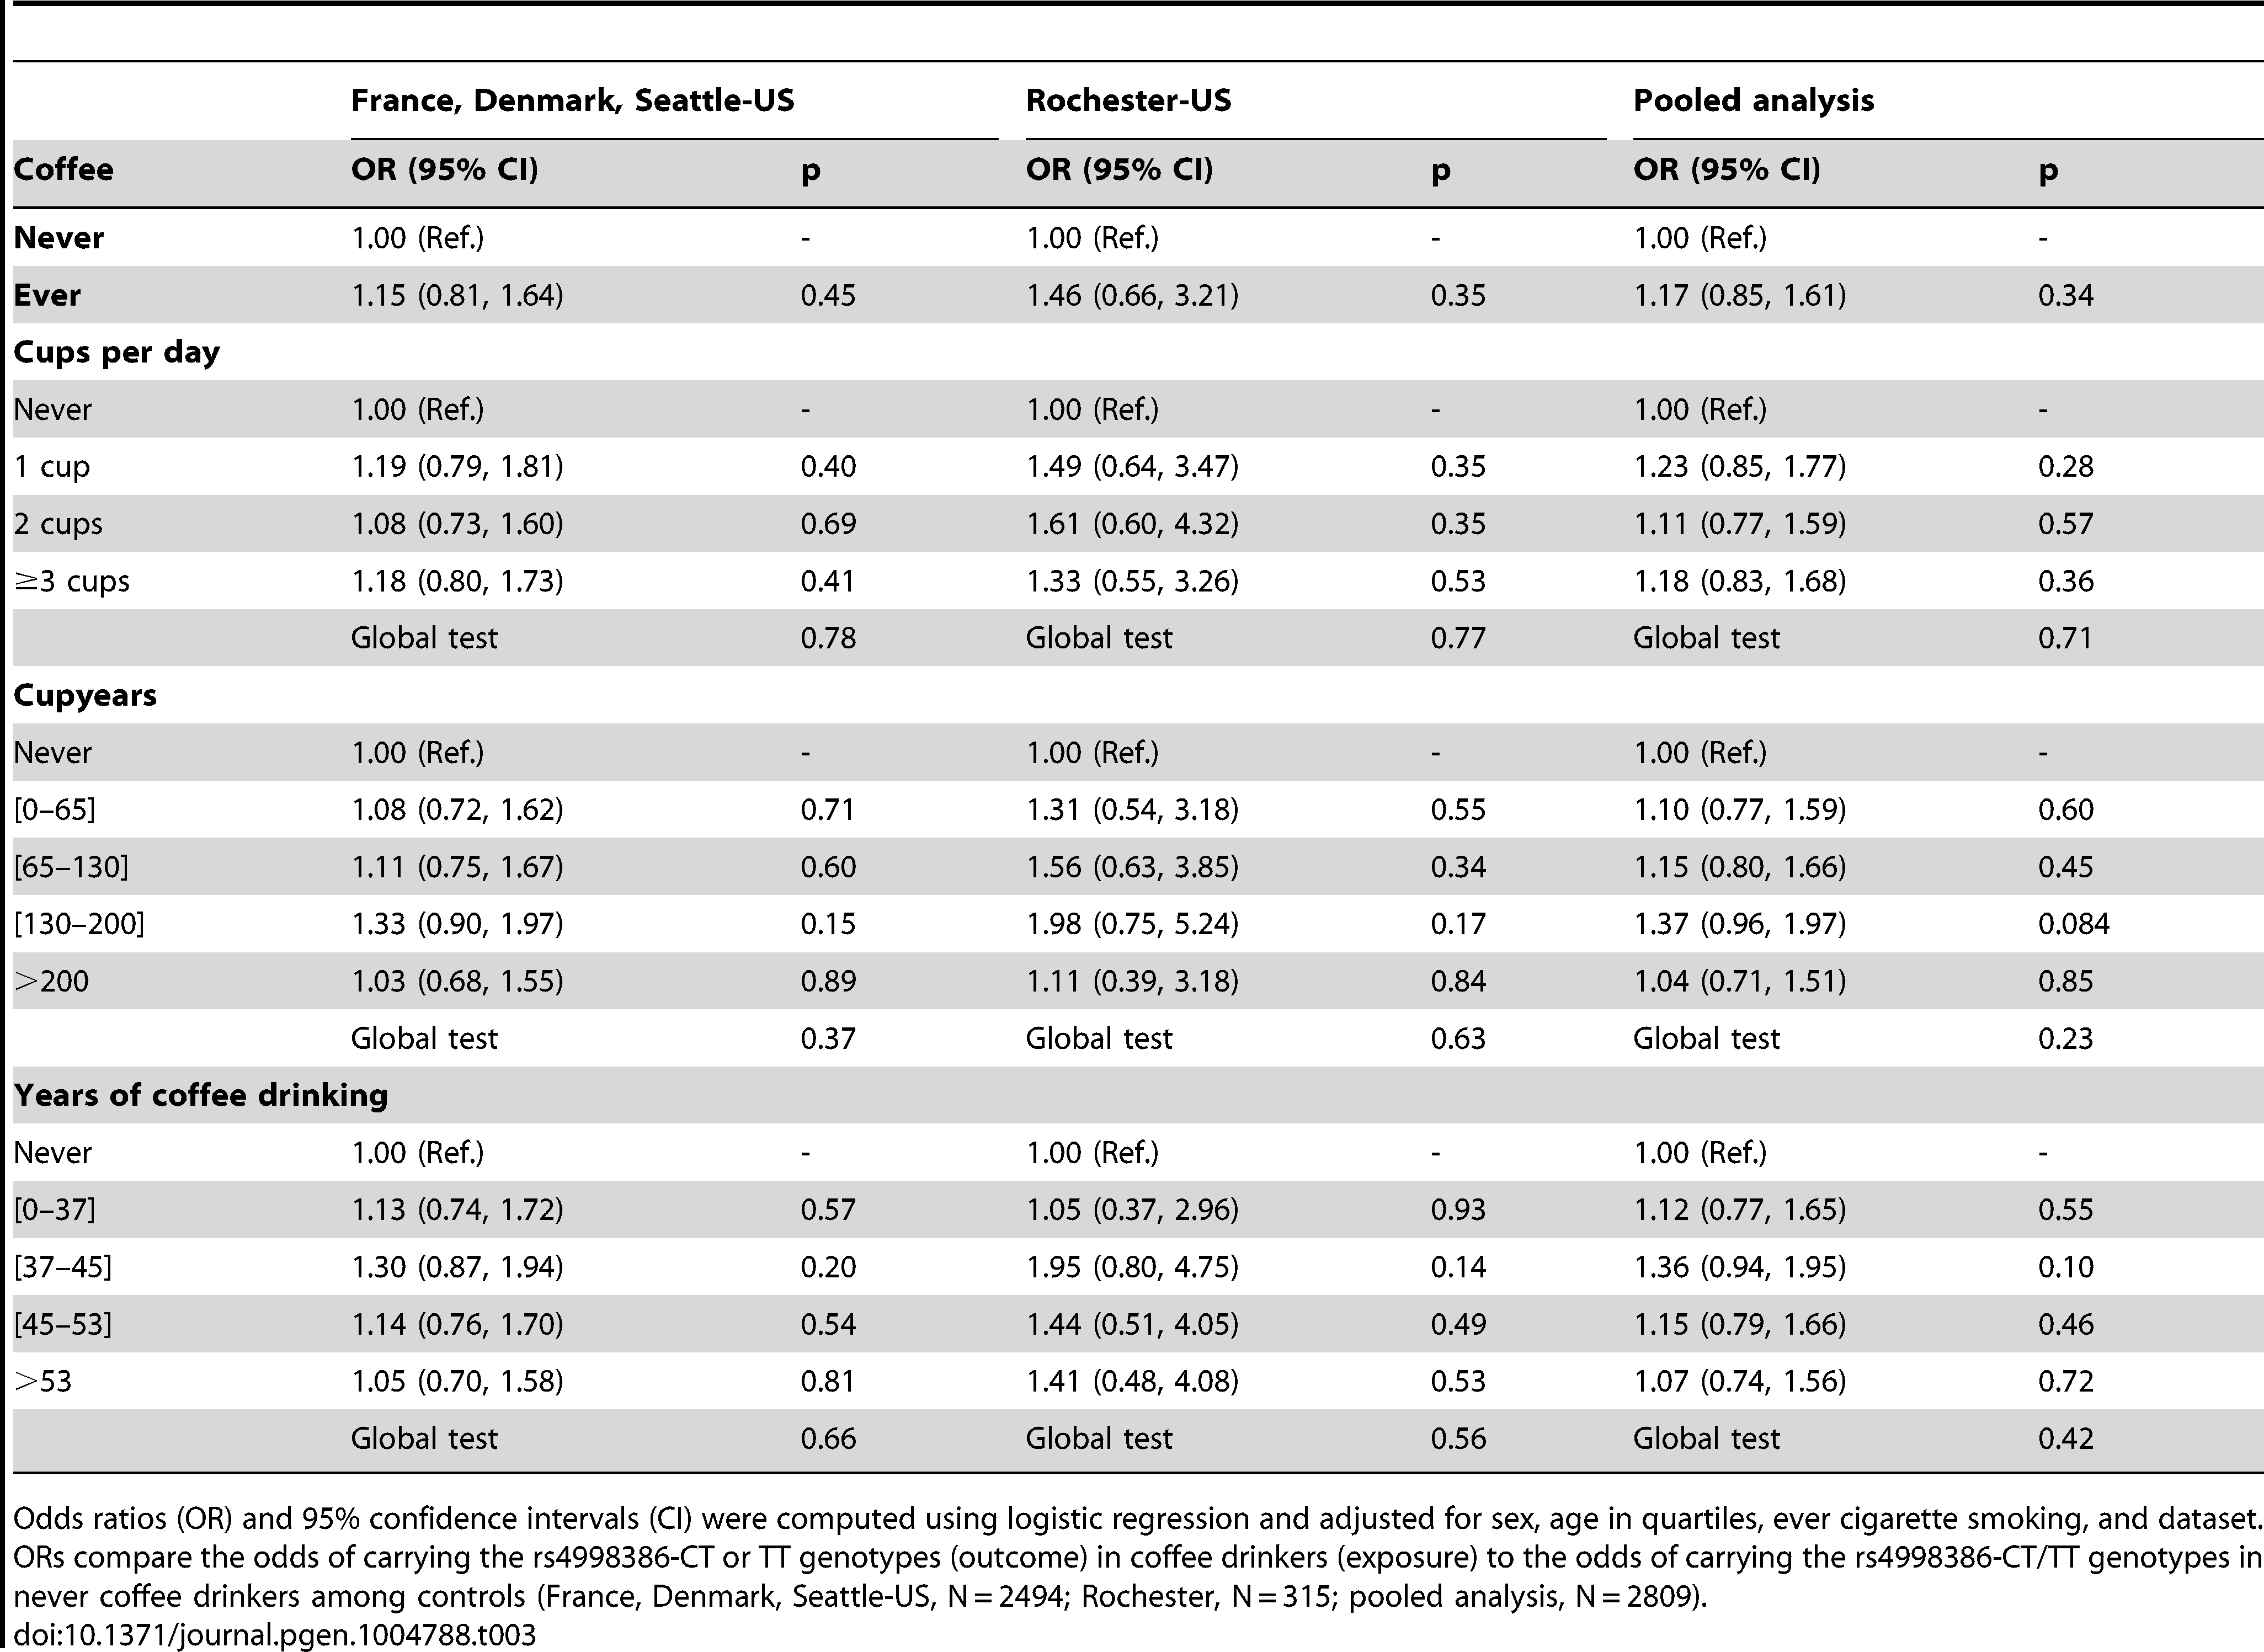 Association of coffee drinking with the CT-TT genotype of rs4998386 in the <i>GRIN2A</i> gene among controls.